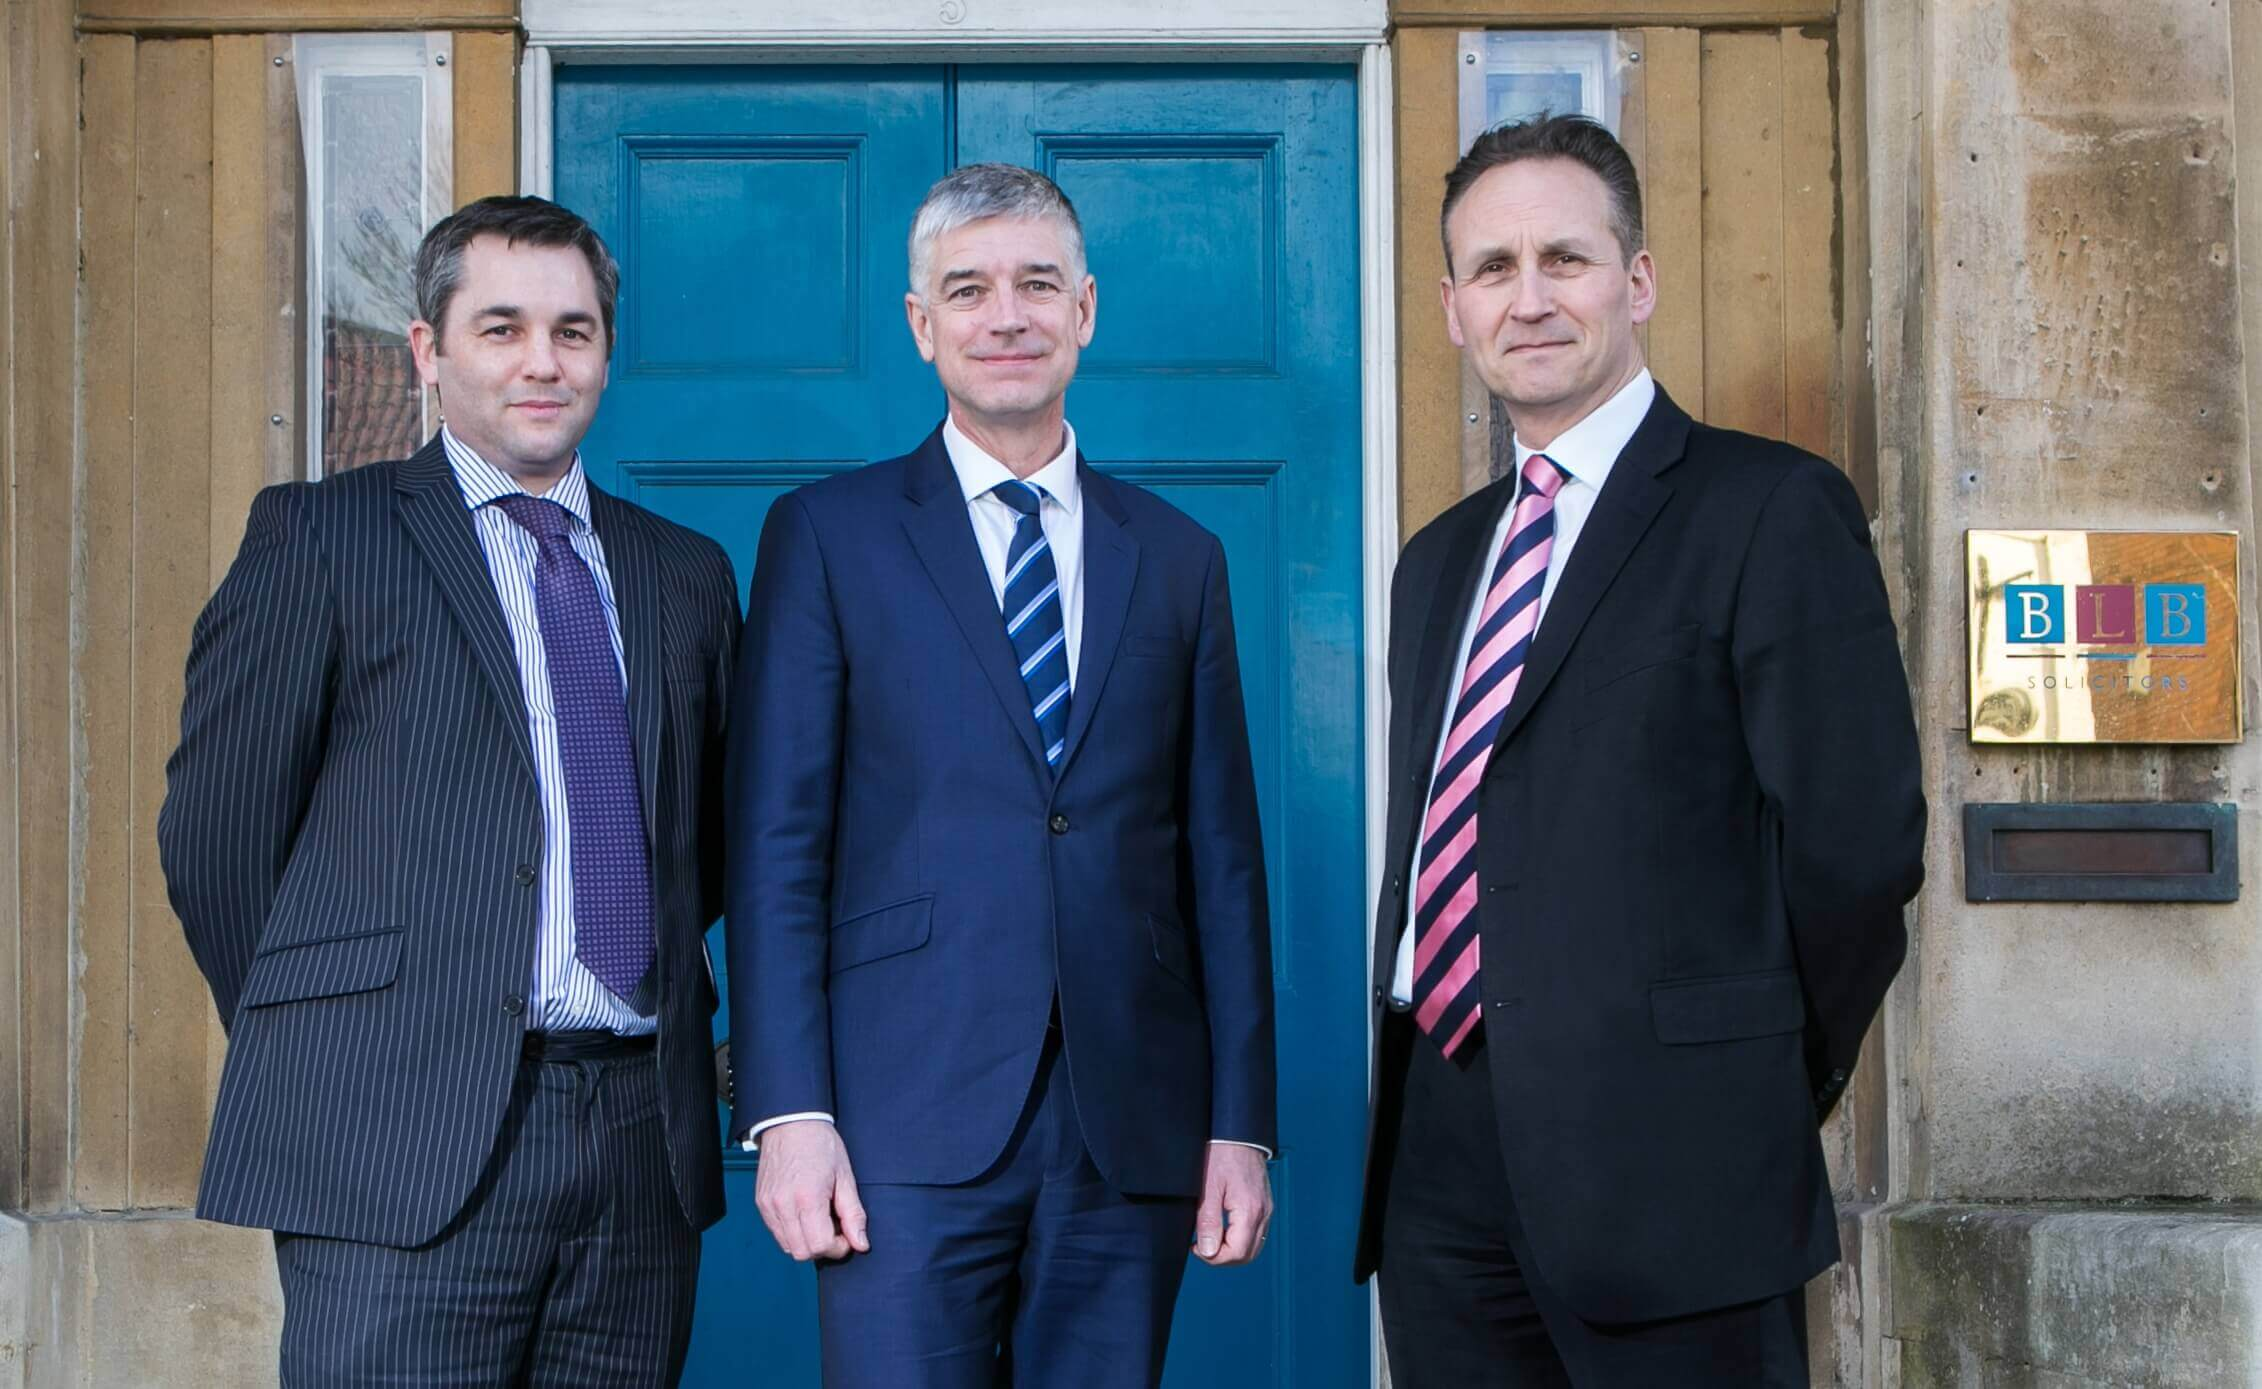 BLB Solicitors appoint 3 new Partners